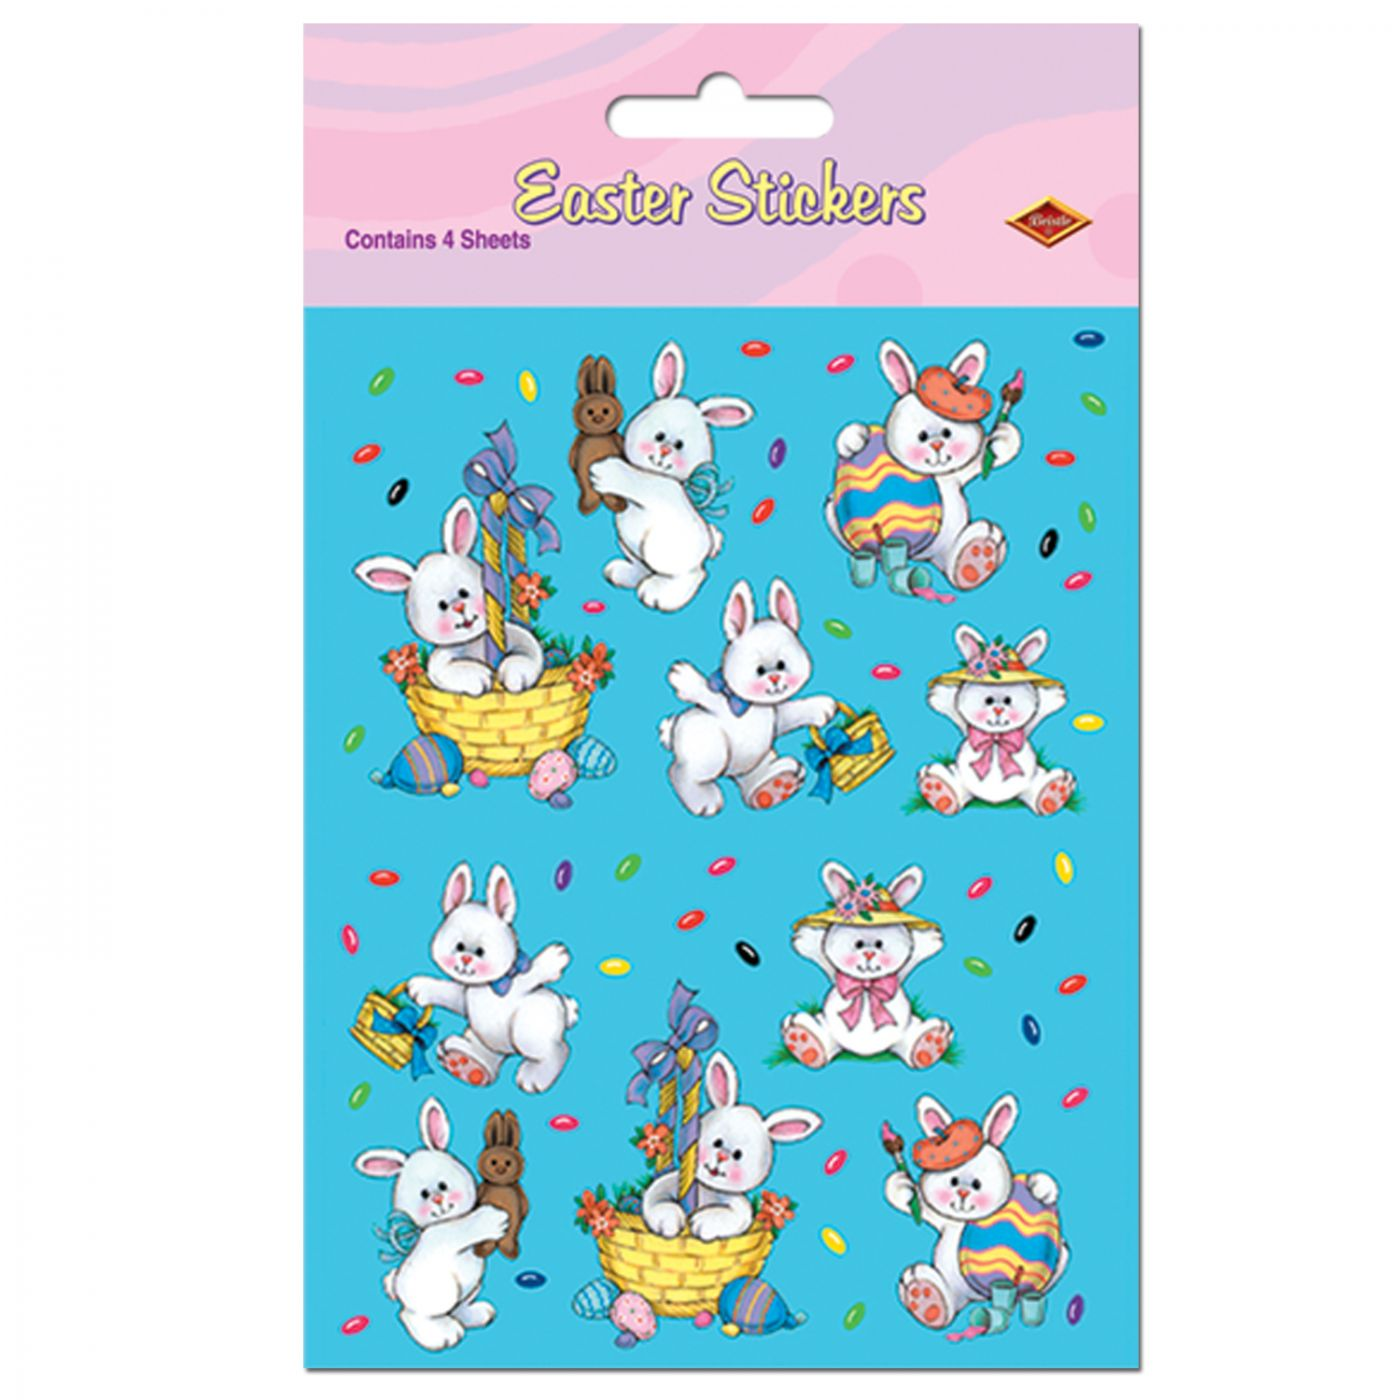 Easter Bunny Stickers image